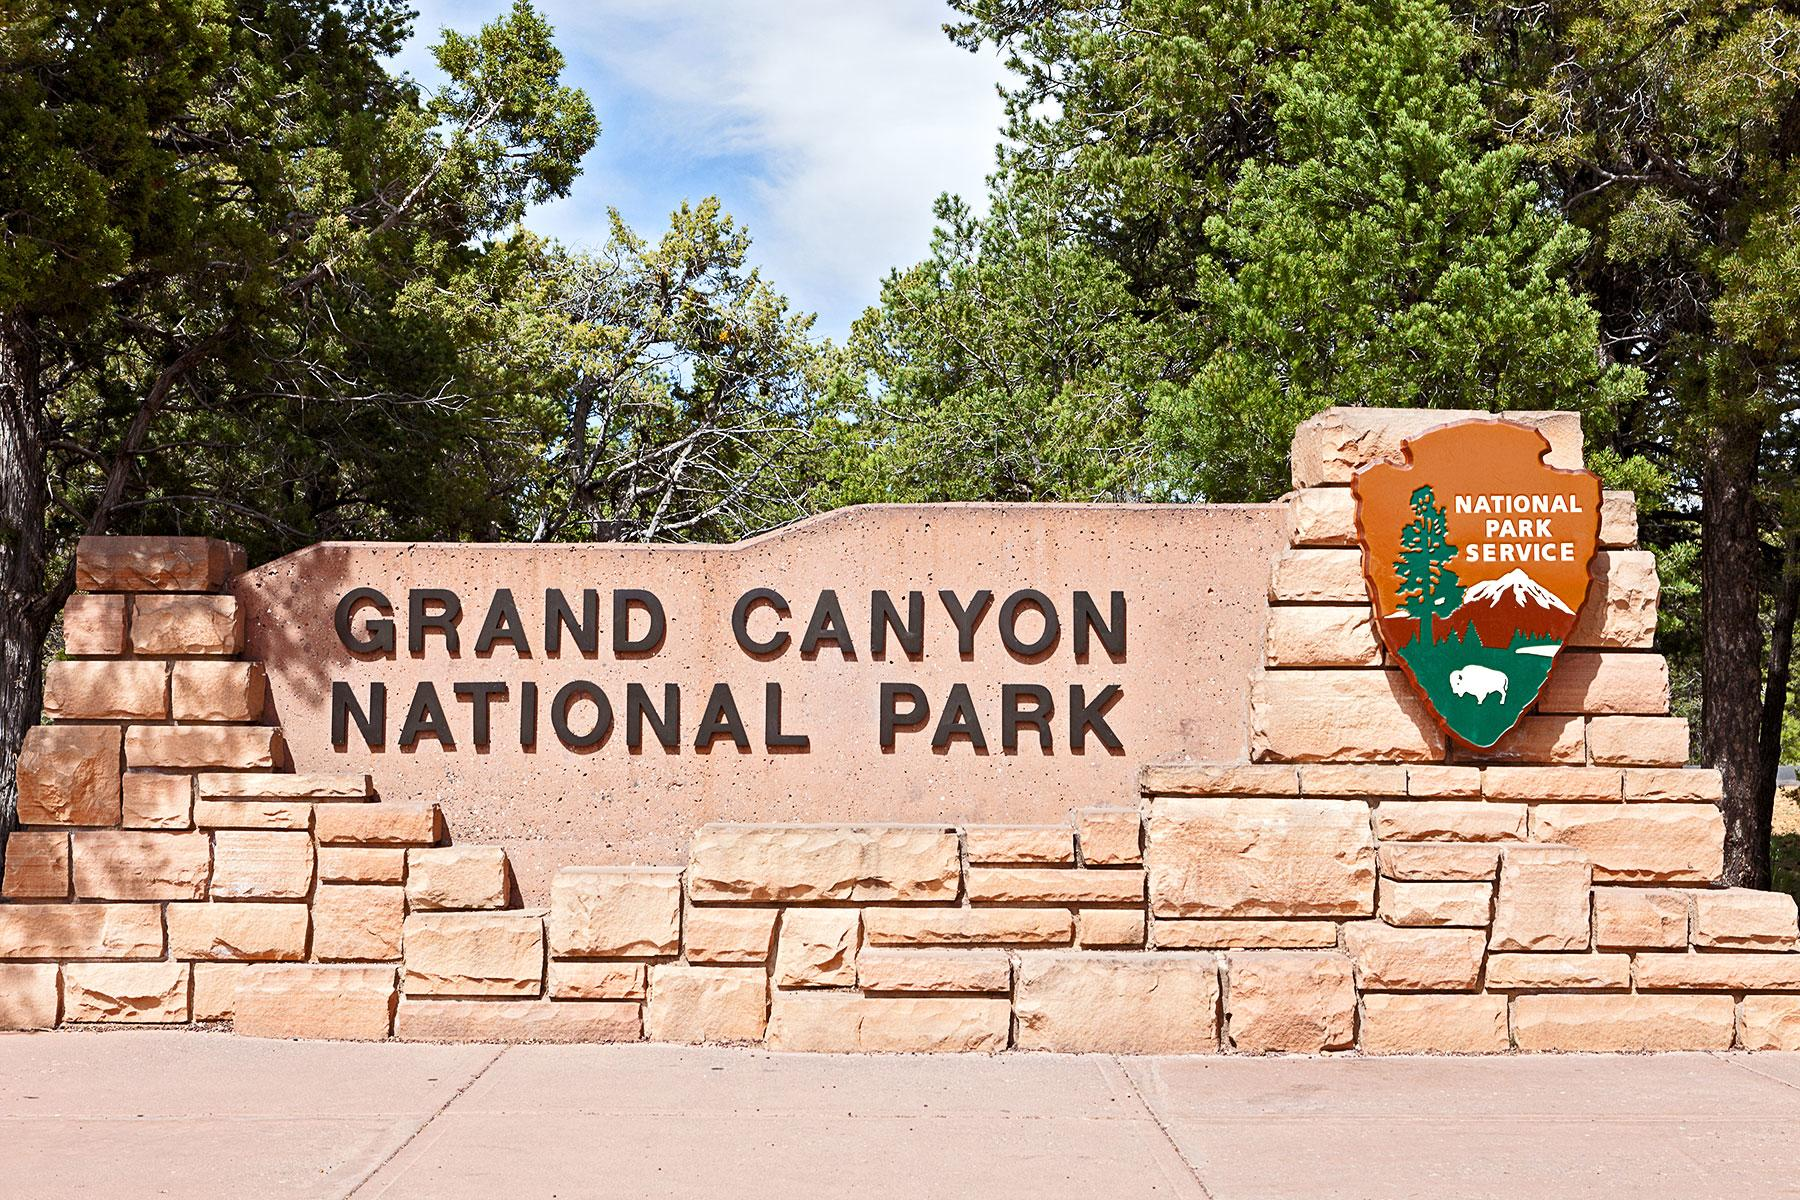 What You Need to Know About Going to the Grand Canyon